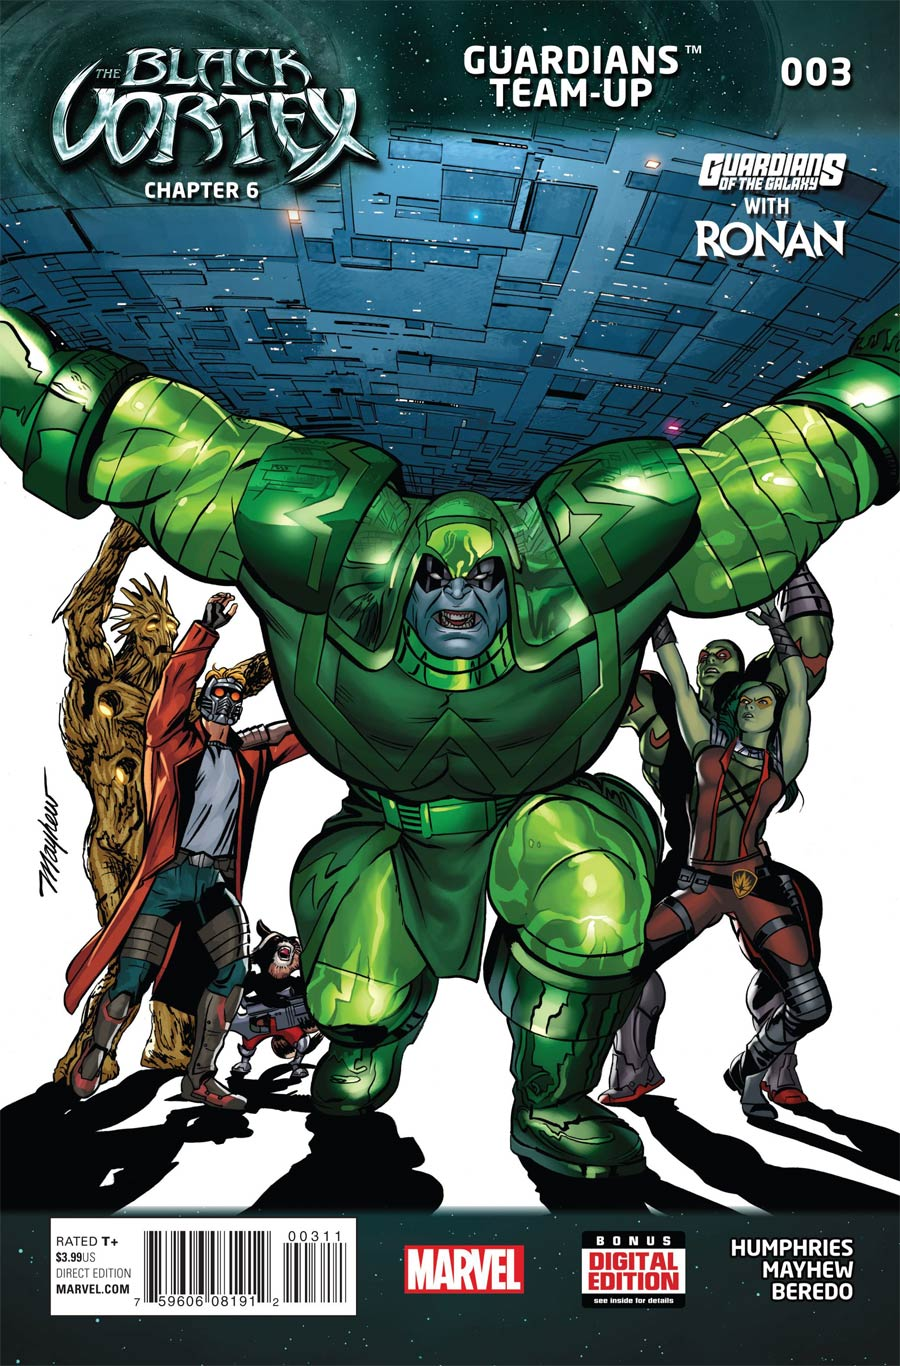 Guardians Team-Up #3 Cover A Regular Mike Mayhew Cover (Black Vortex Part 6)